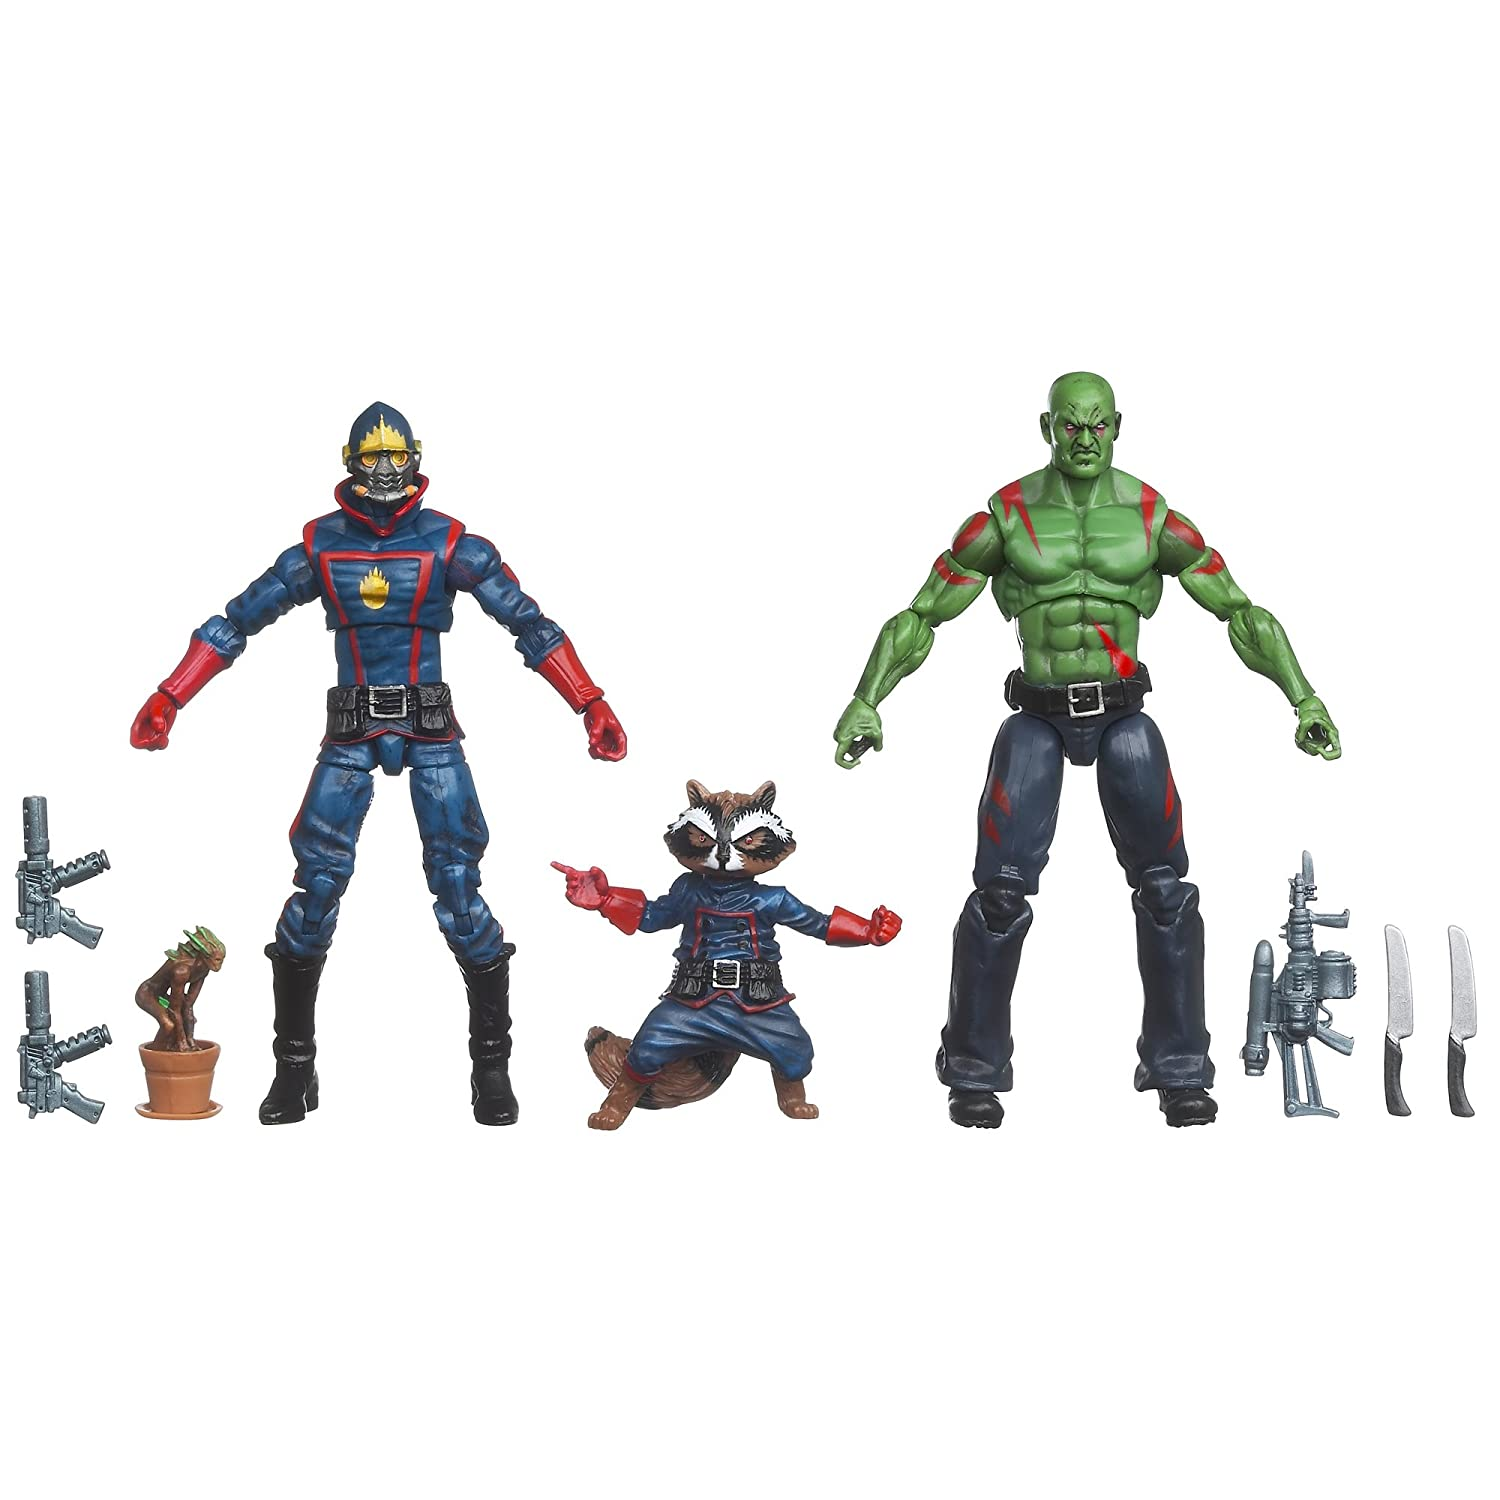 Marvel Universe Super Hero Team Guardians of the Galaxy jetzt bestellen